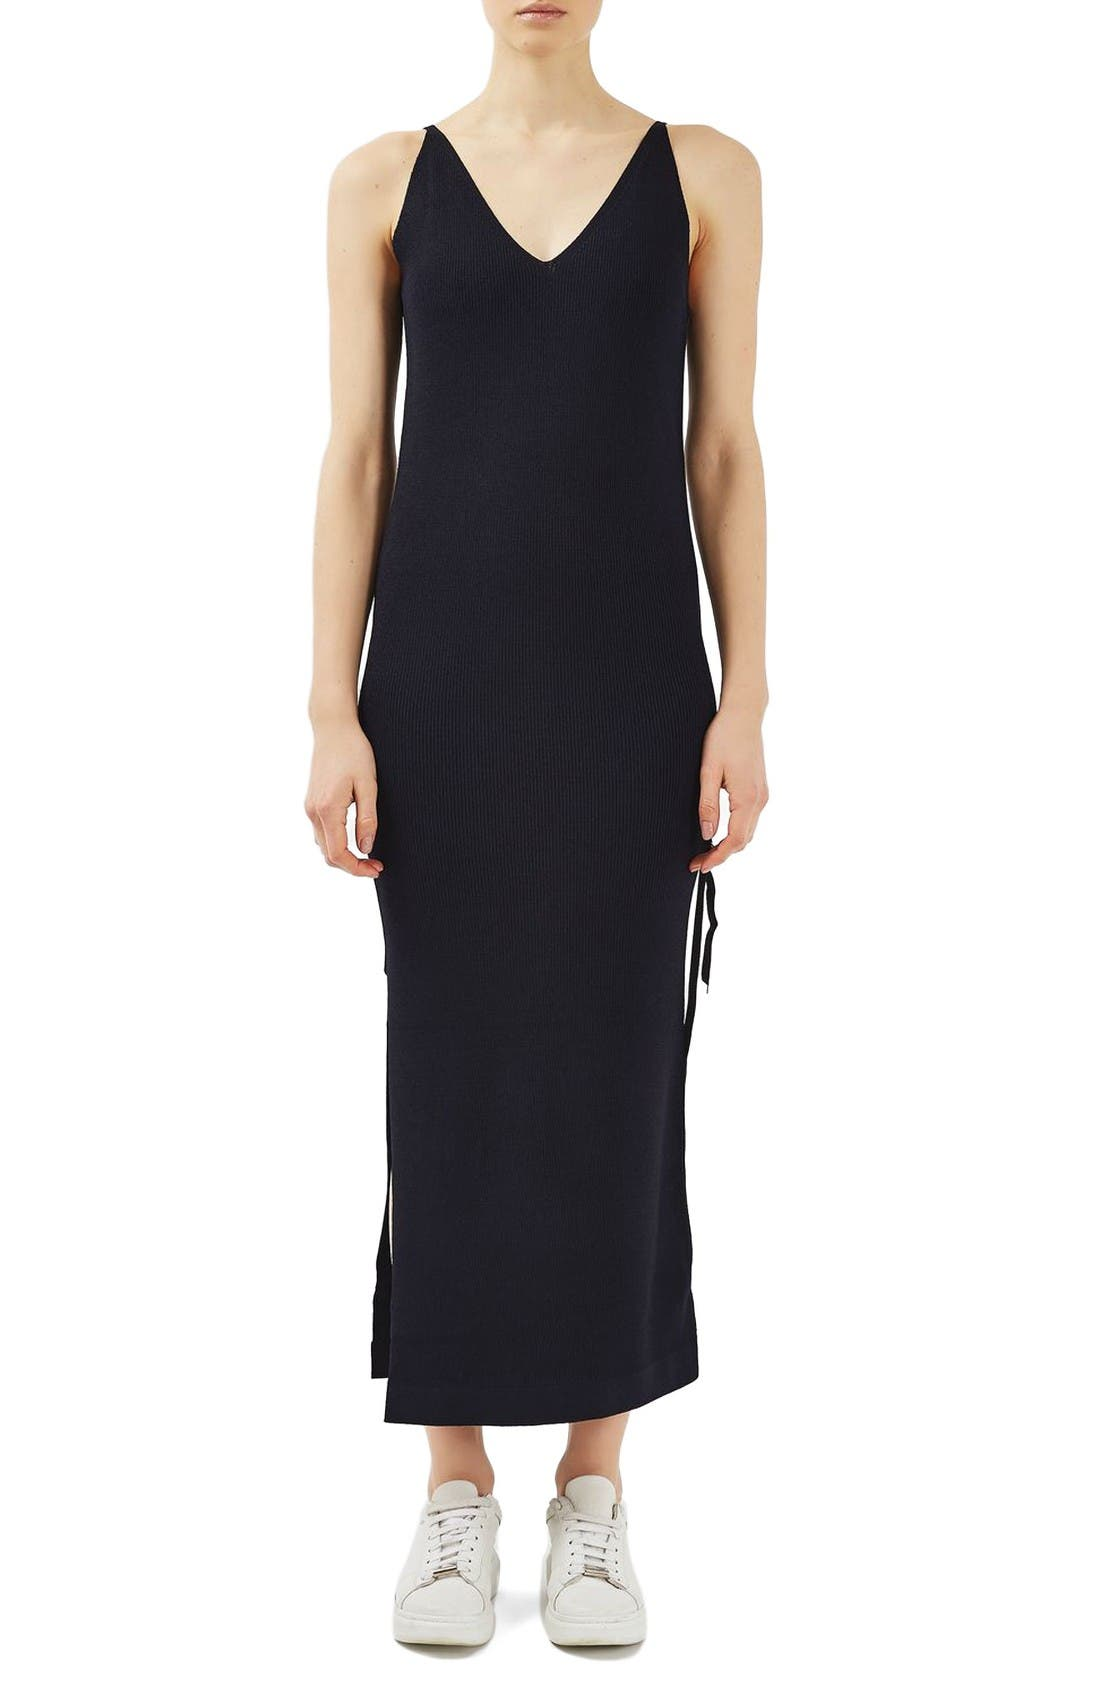 TOPSHOP BOUTIQUE Ribbed Midi Slipdress